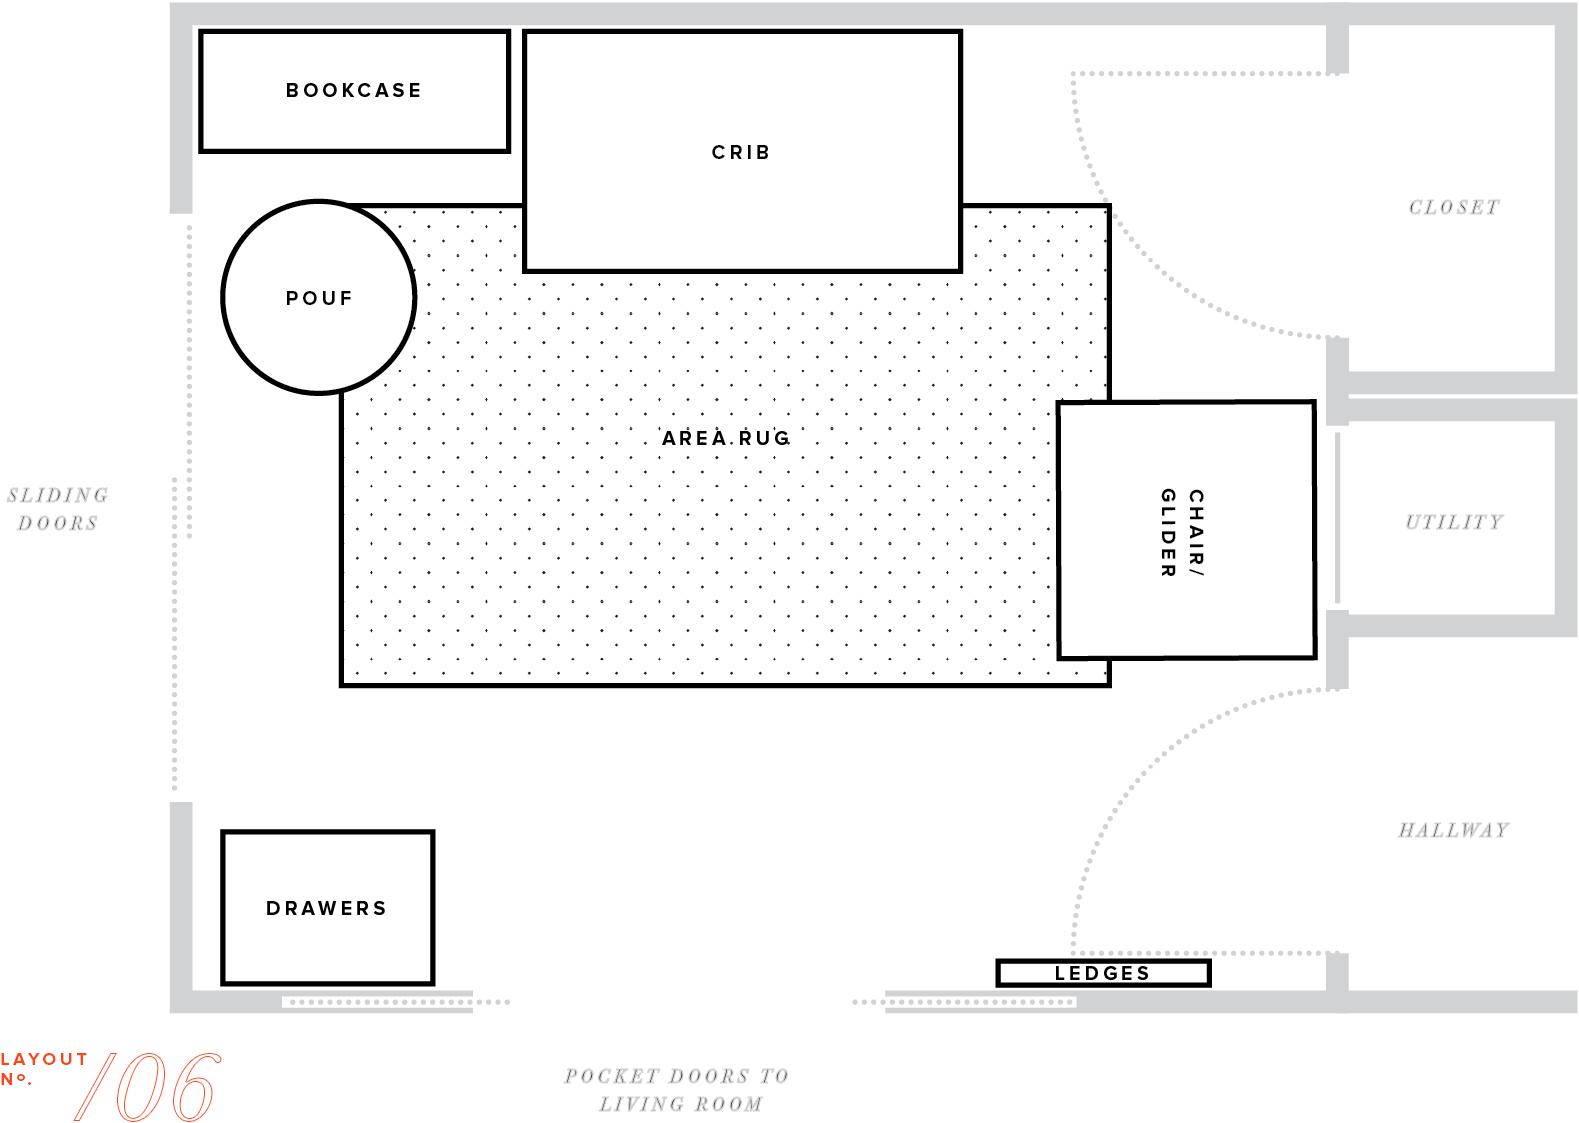 Furniture Layout Plans